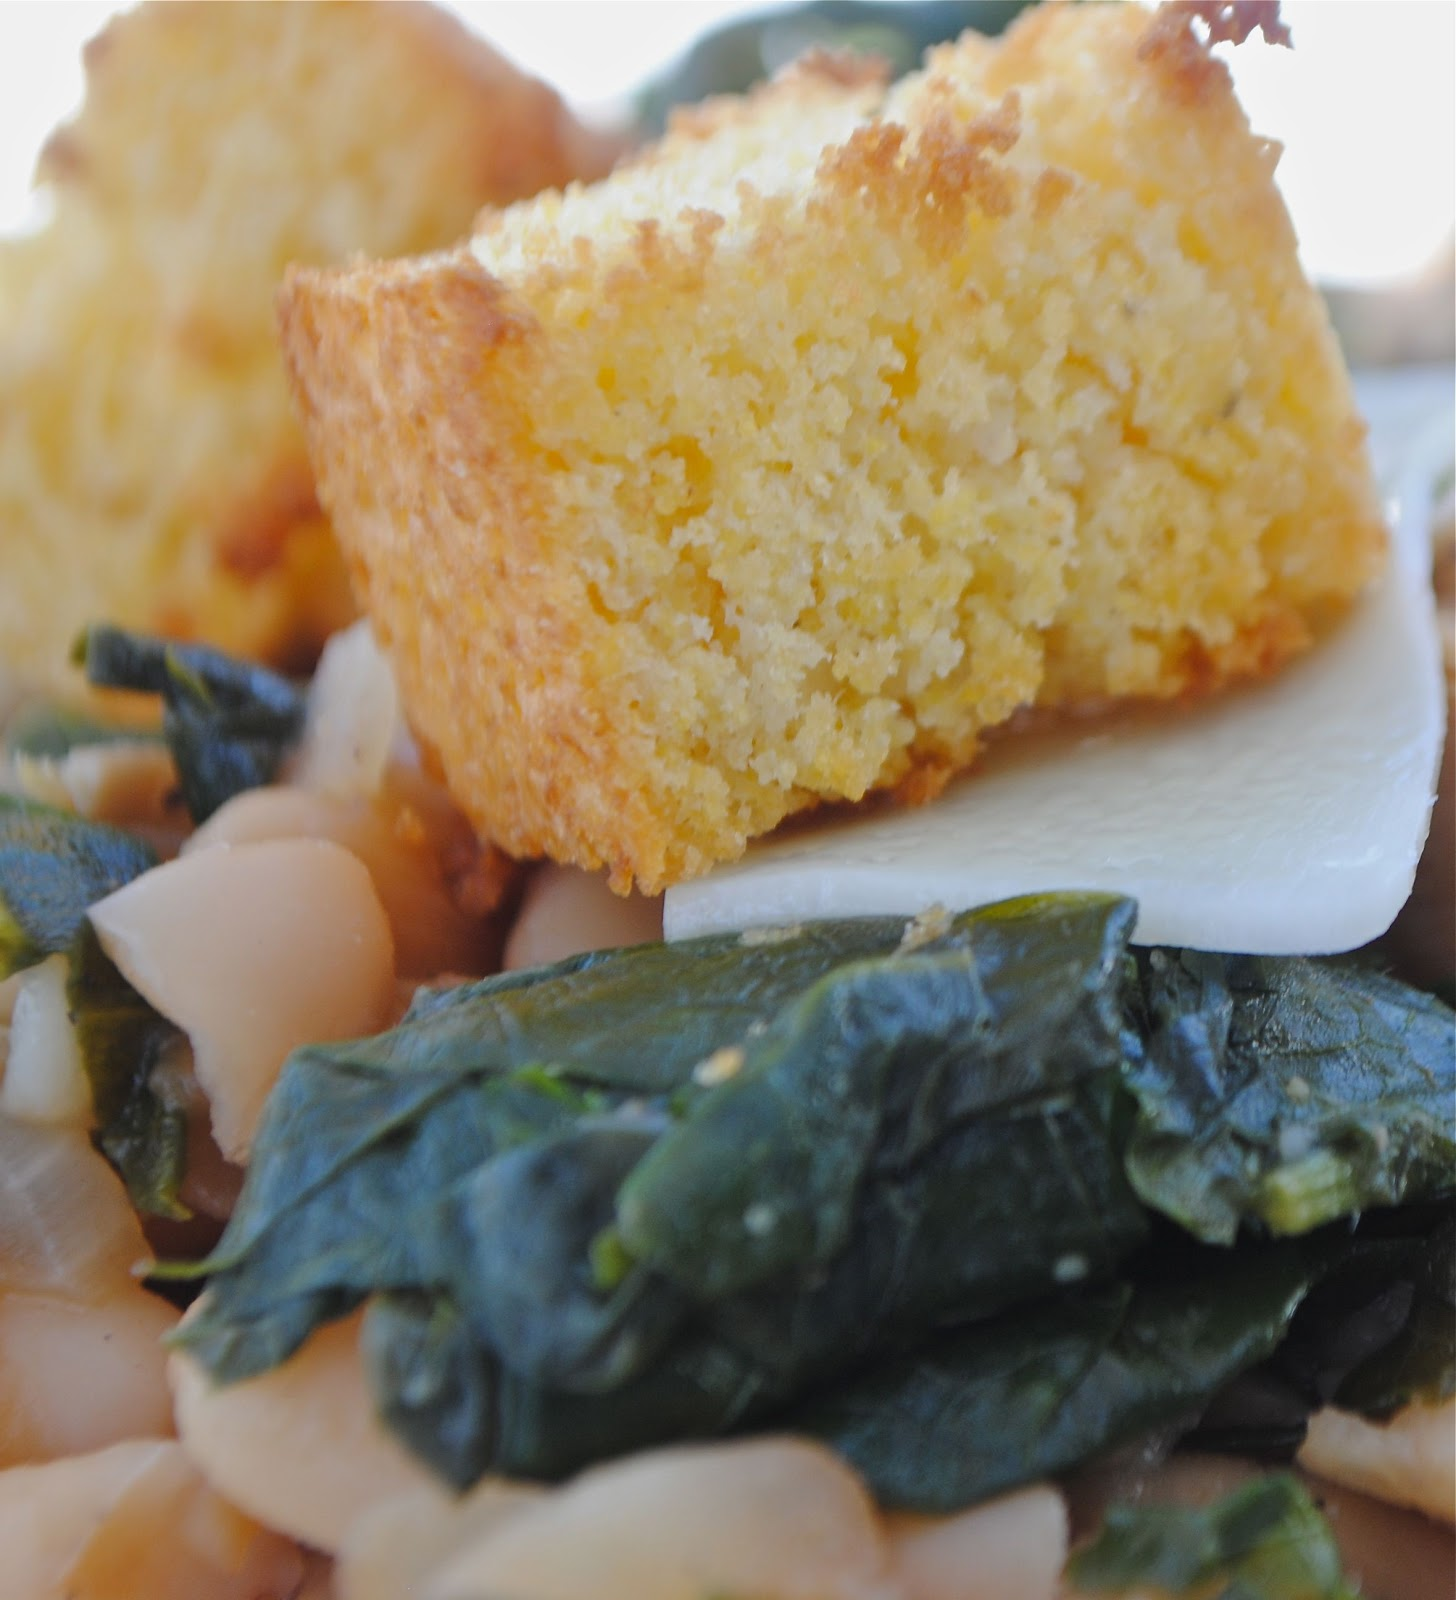 enjoying a second helping beans and greens with cornbread croutons